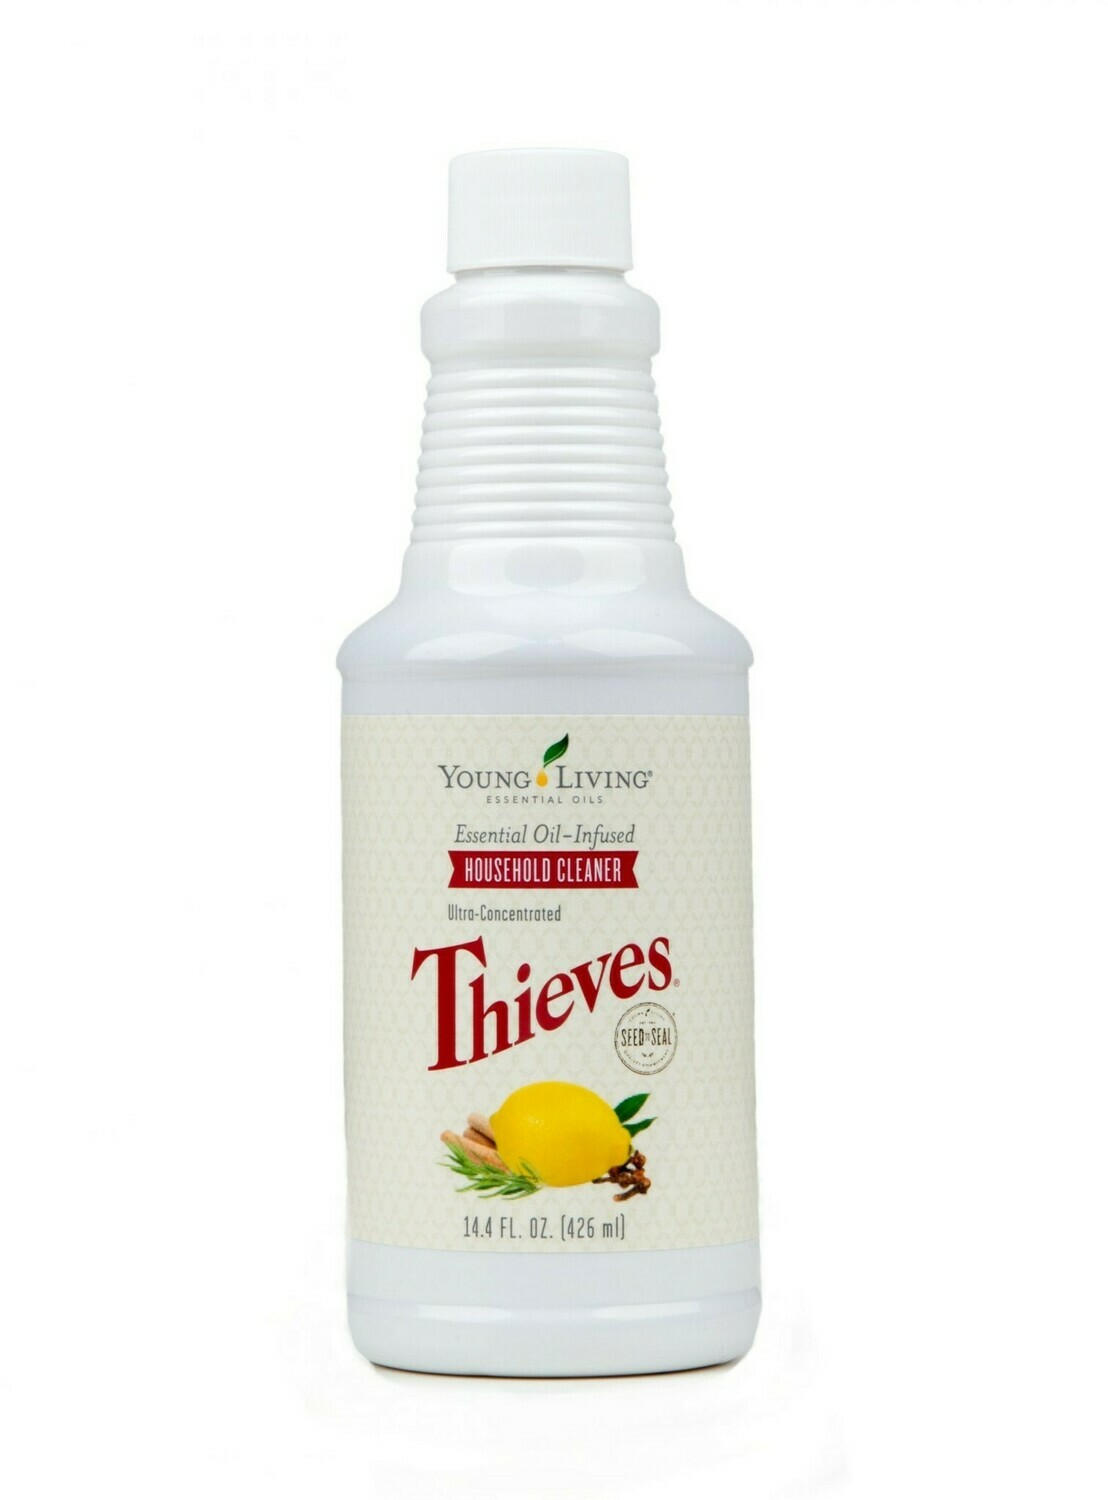 Thieves Household Cleaner - Ultra-Concentrated